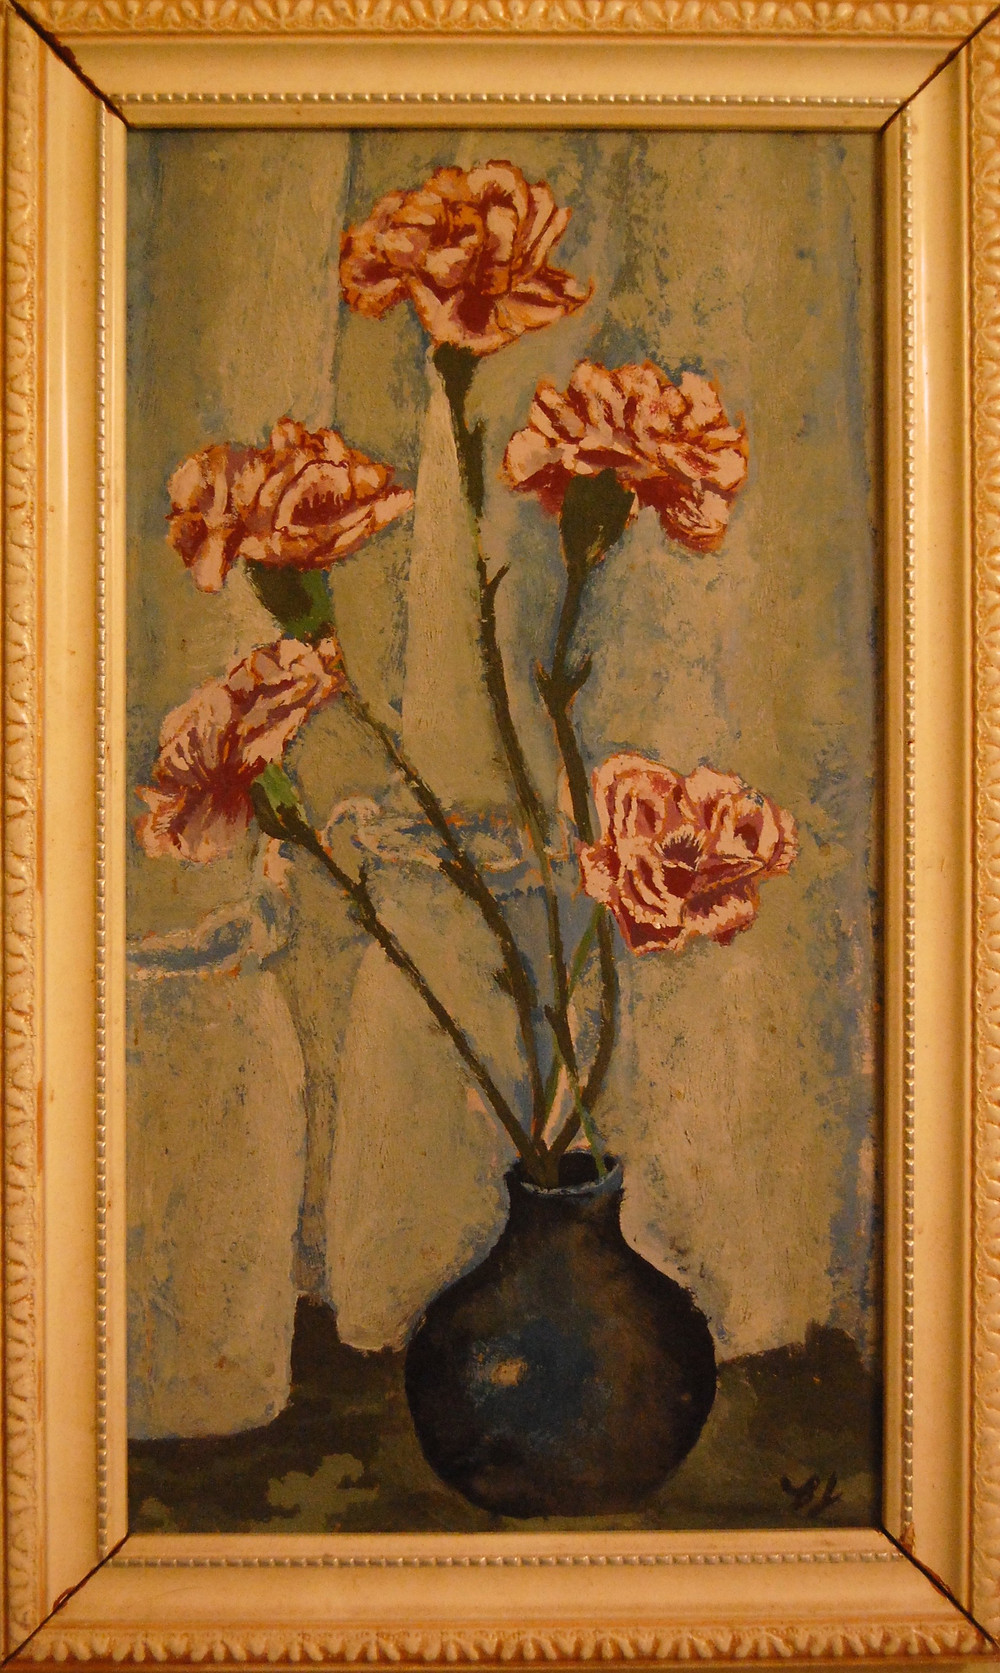 Bjlane's first painting - carnations in vase ©1969